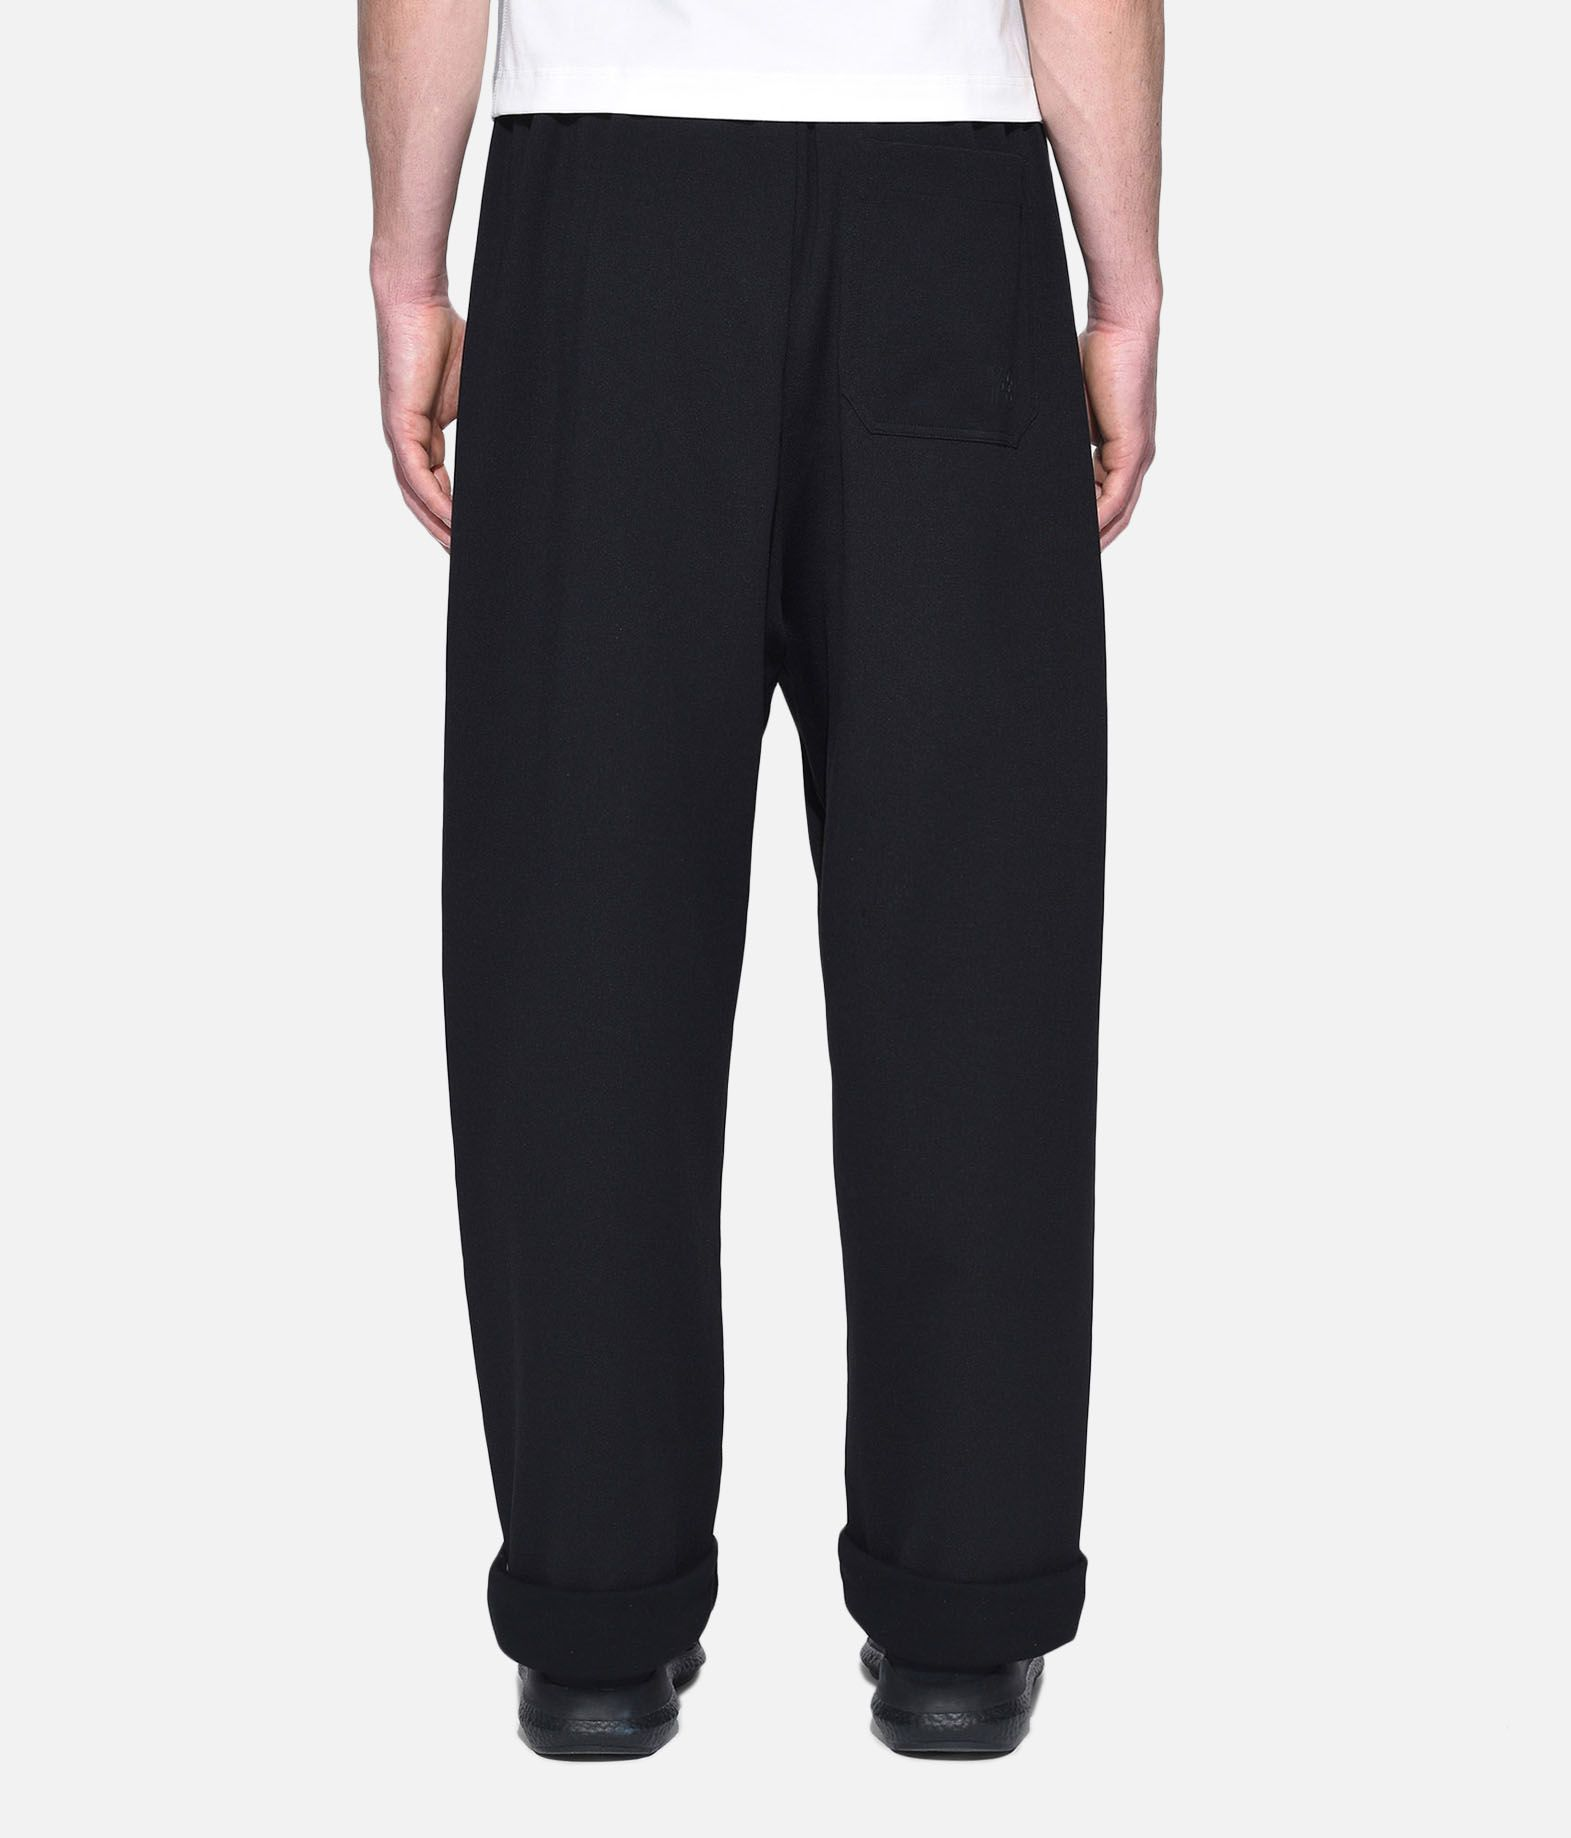 Y-3 Y-3 3-Stripes Selvedge Wide Pants Tracksuit bottoms Man d